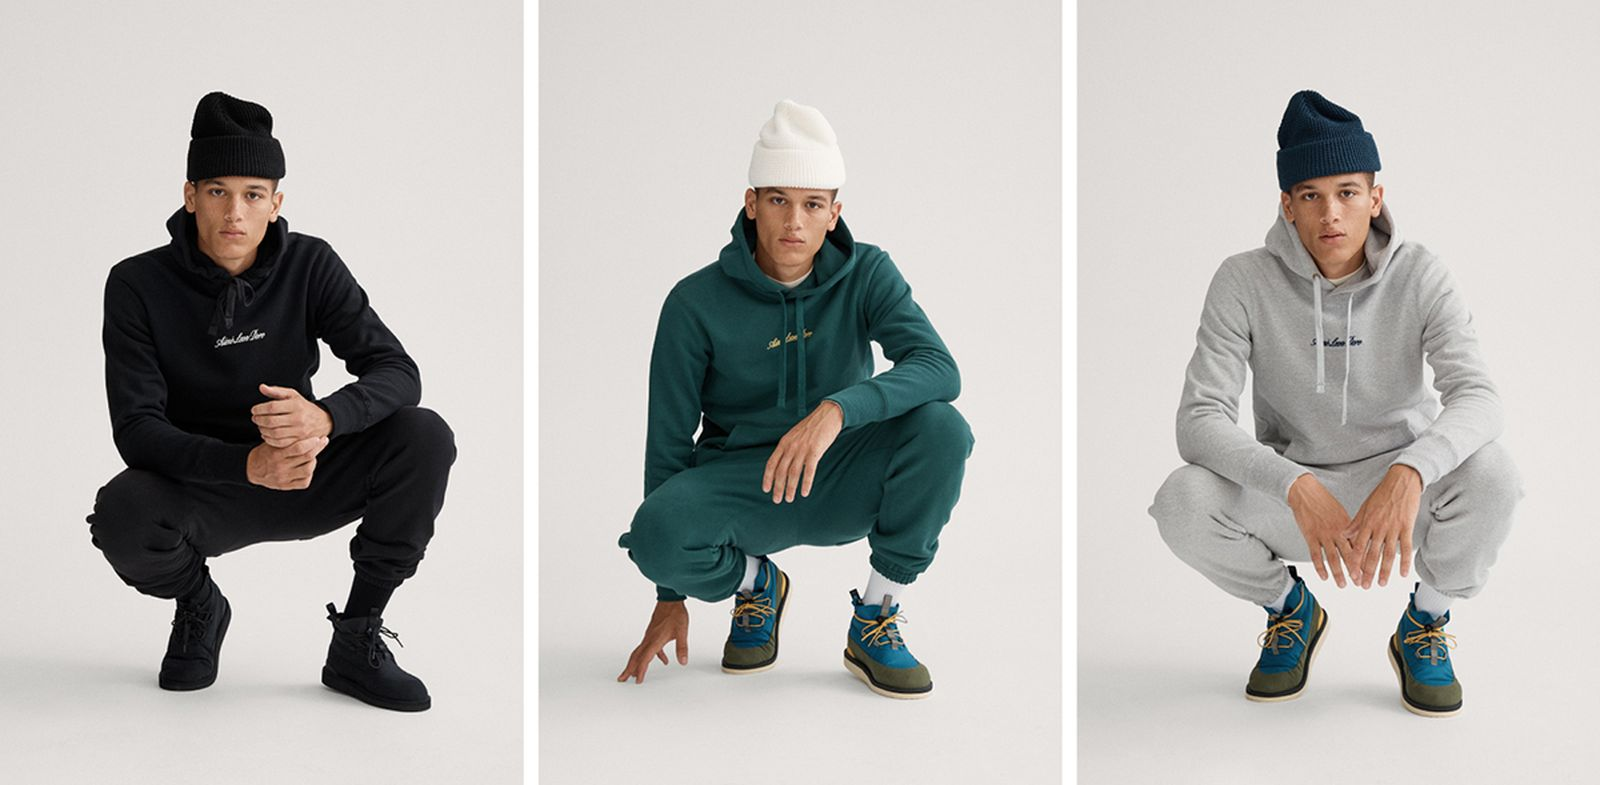 Aimé Leon Dore FW19 Uniform Program hoodies sweatpants beanies